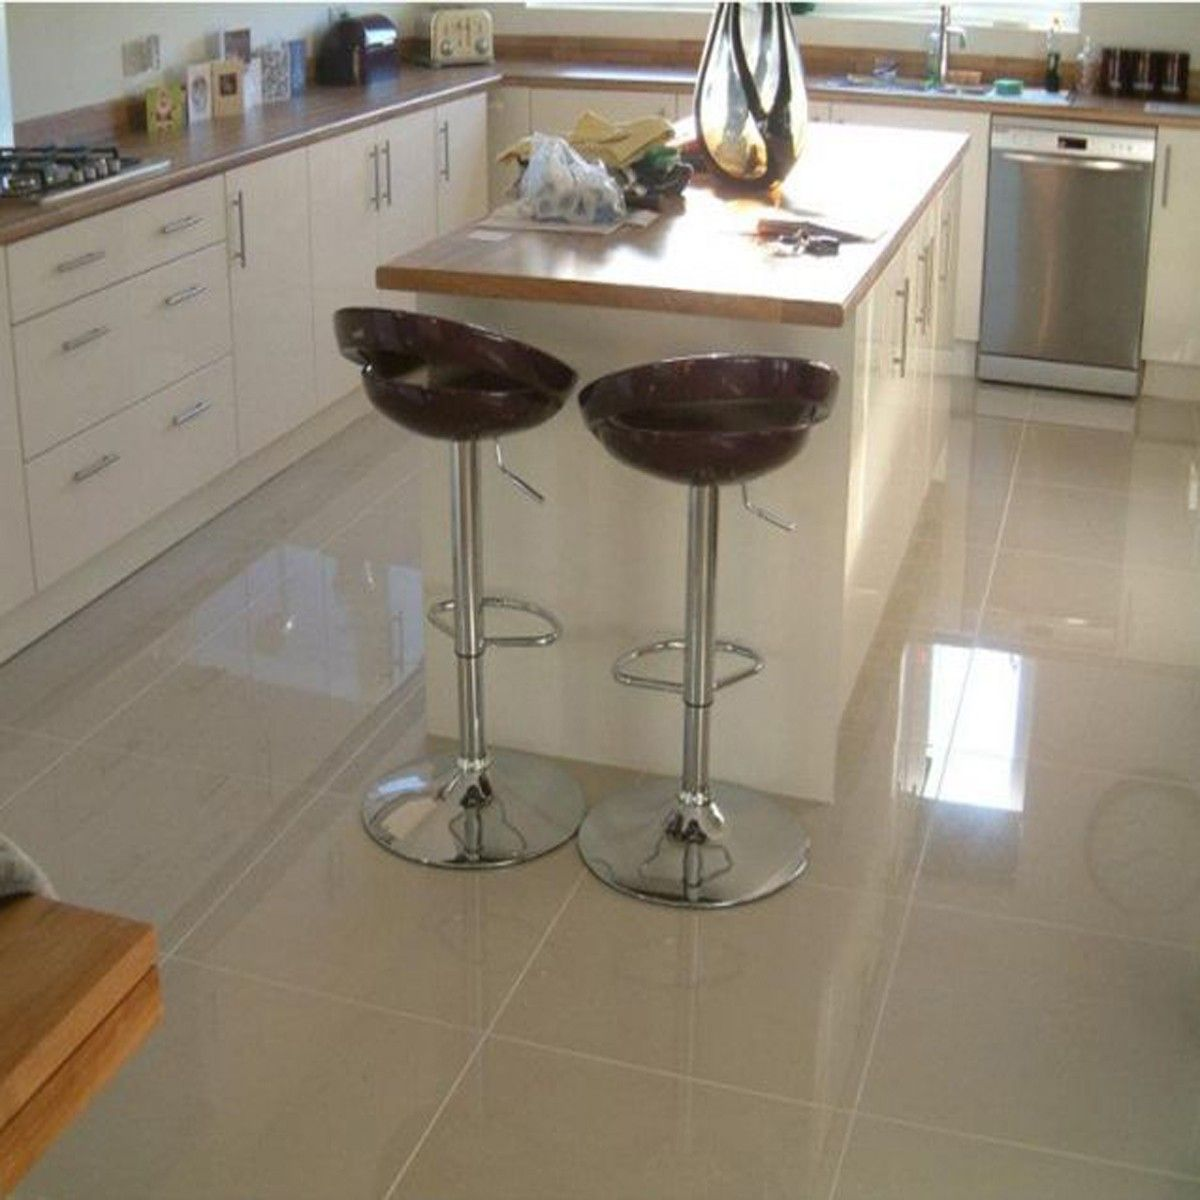 Large Kitchen Floor Tiles Floor Only Flooring Ideas Pinterest Dark Cream And Search